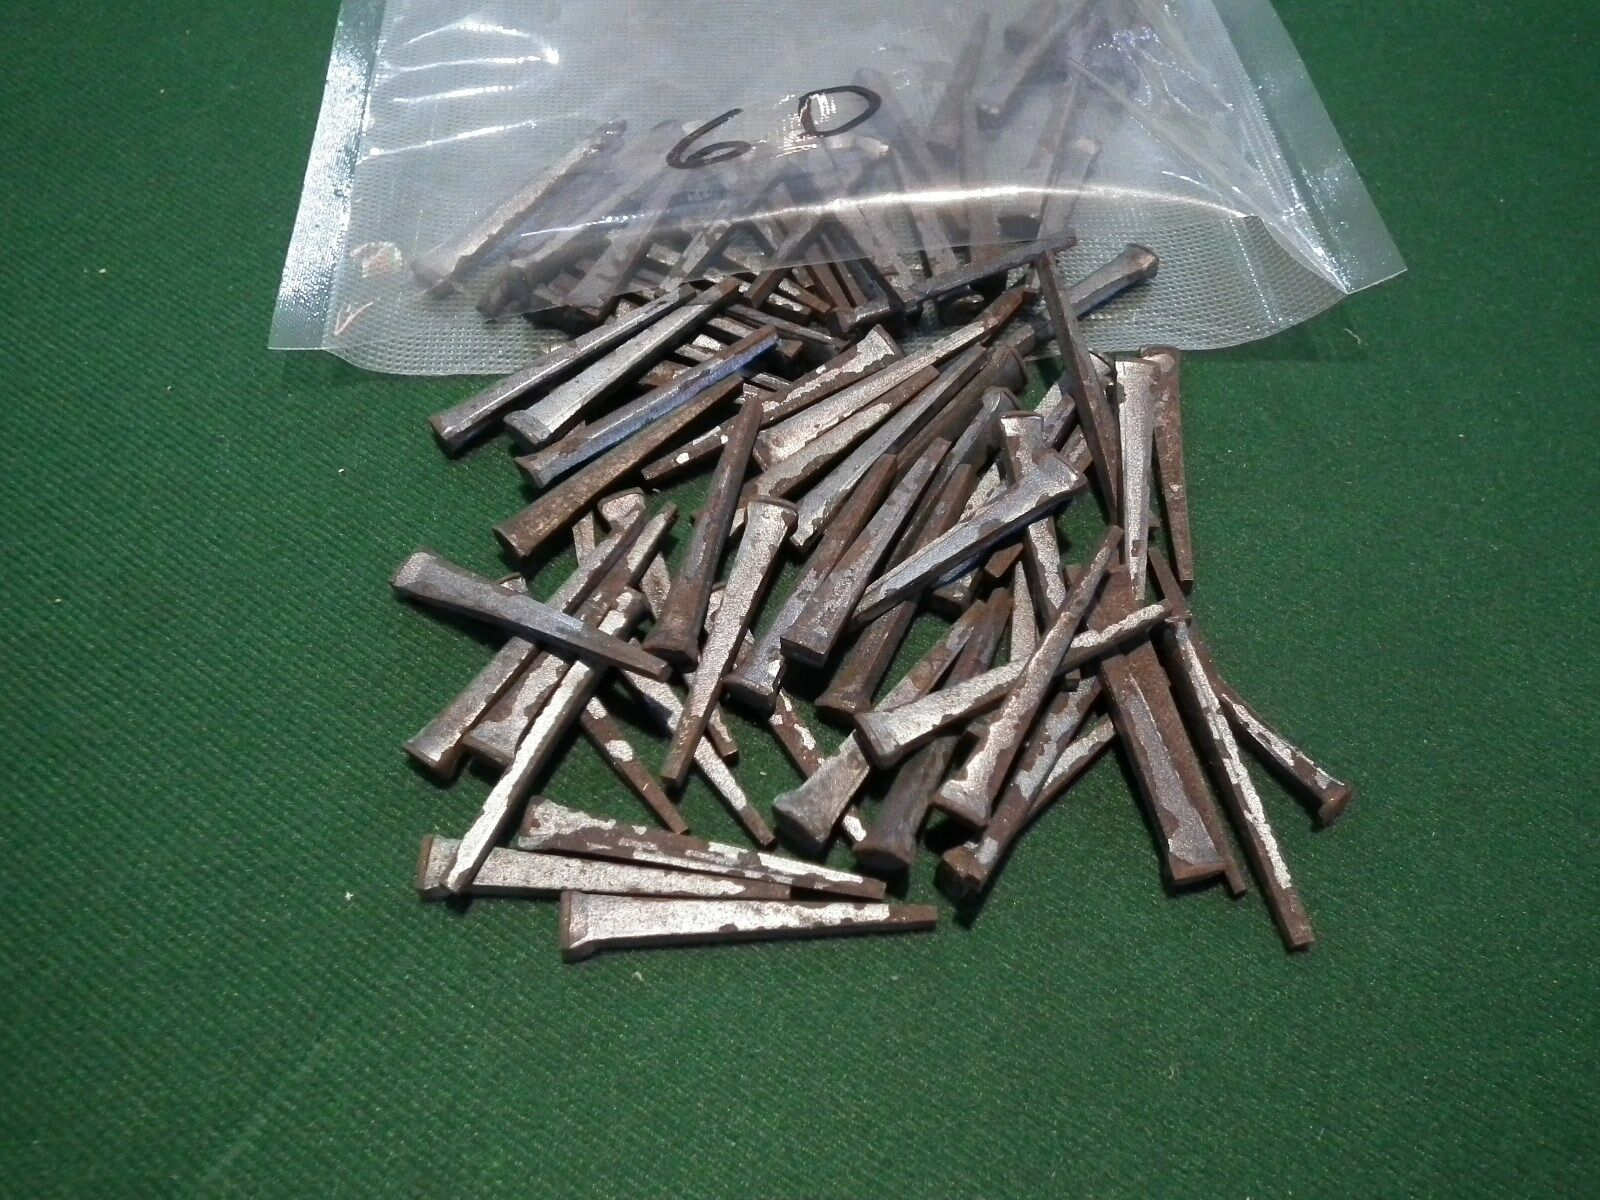 Vintage Cut Nails 1 Pound, 6D, Made In Wva W/american Steel Hardened & Tempered